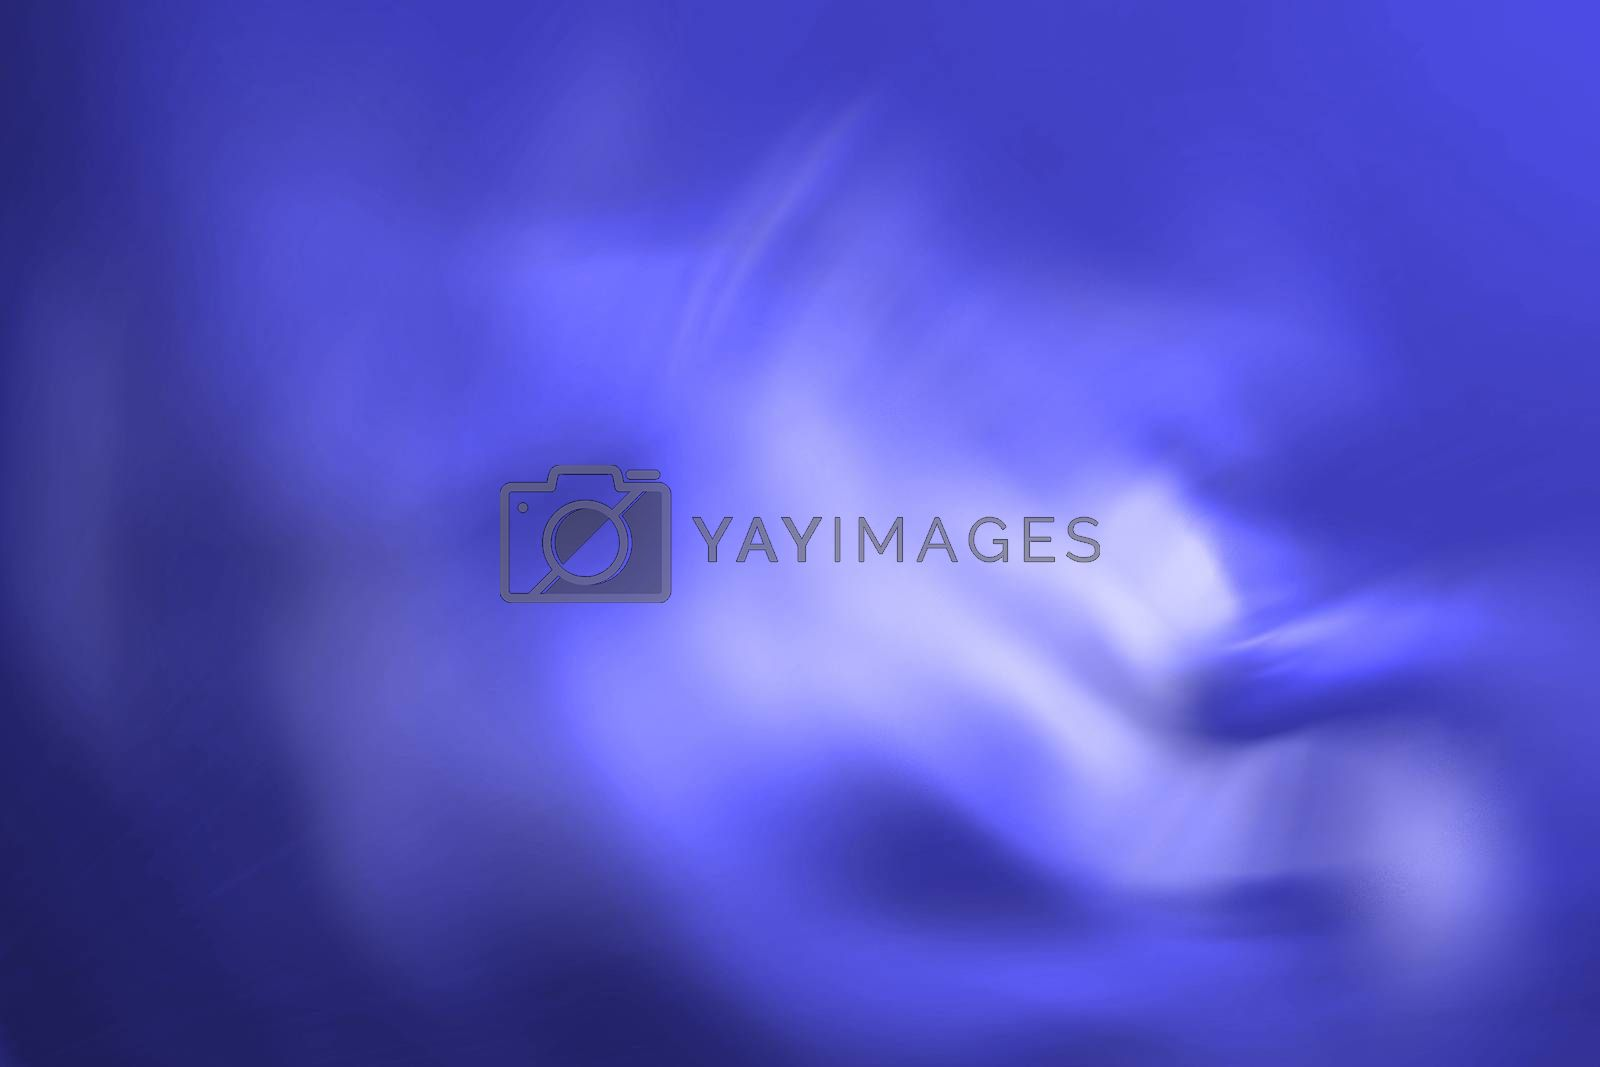 Graphic representation of abstraction of brightly blue colour